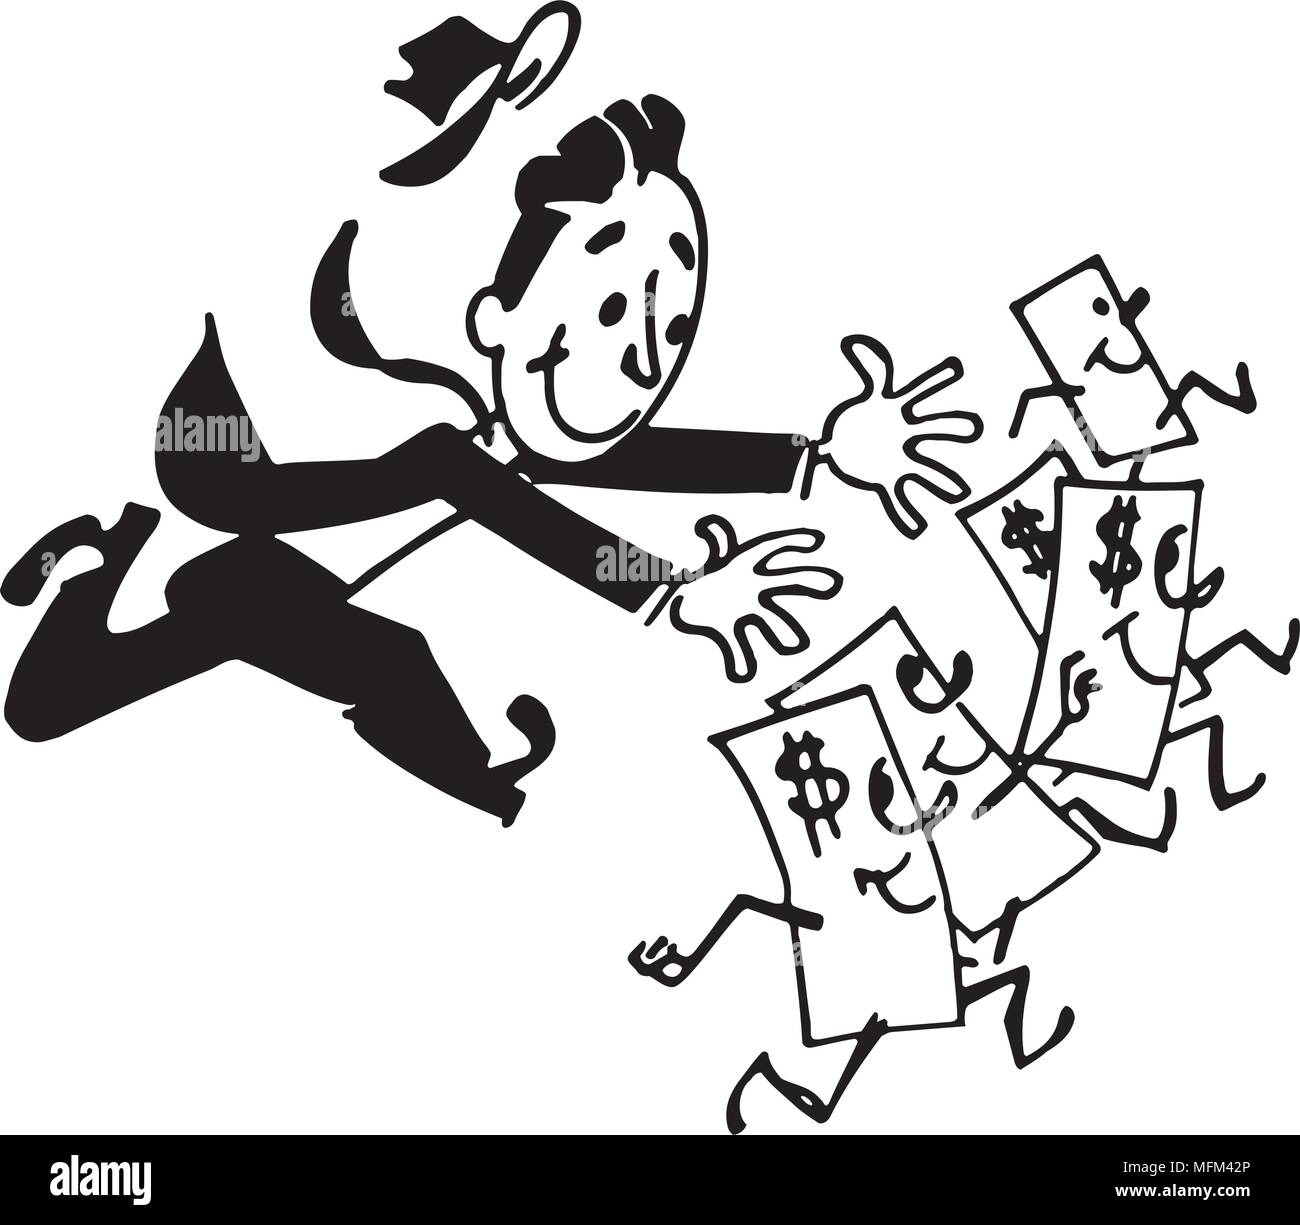 Man Chasing Money - Retro Clipart Illustration - Stock Image